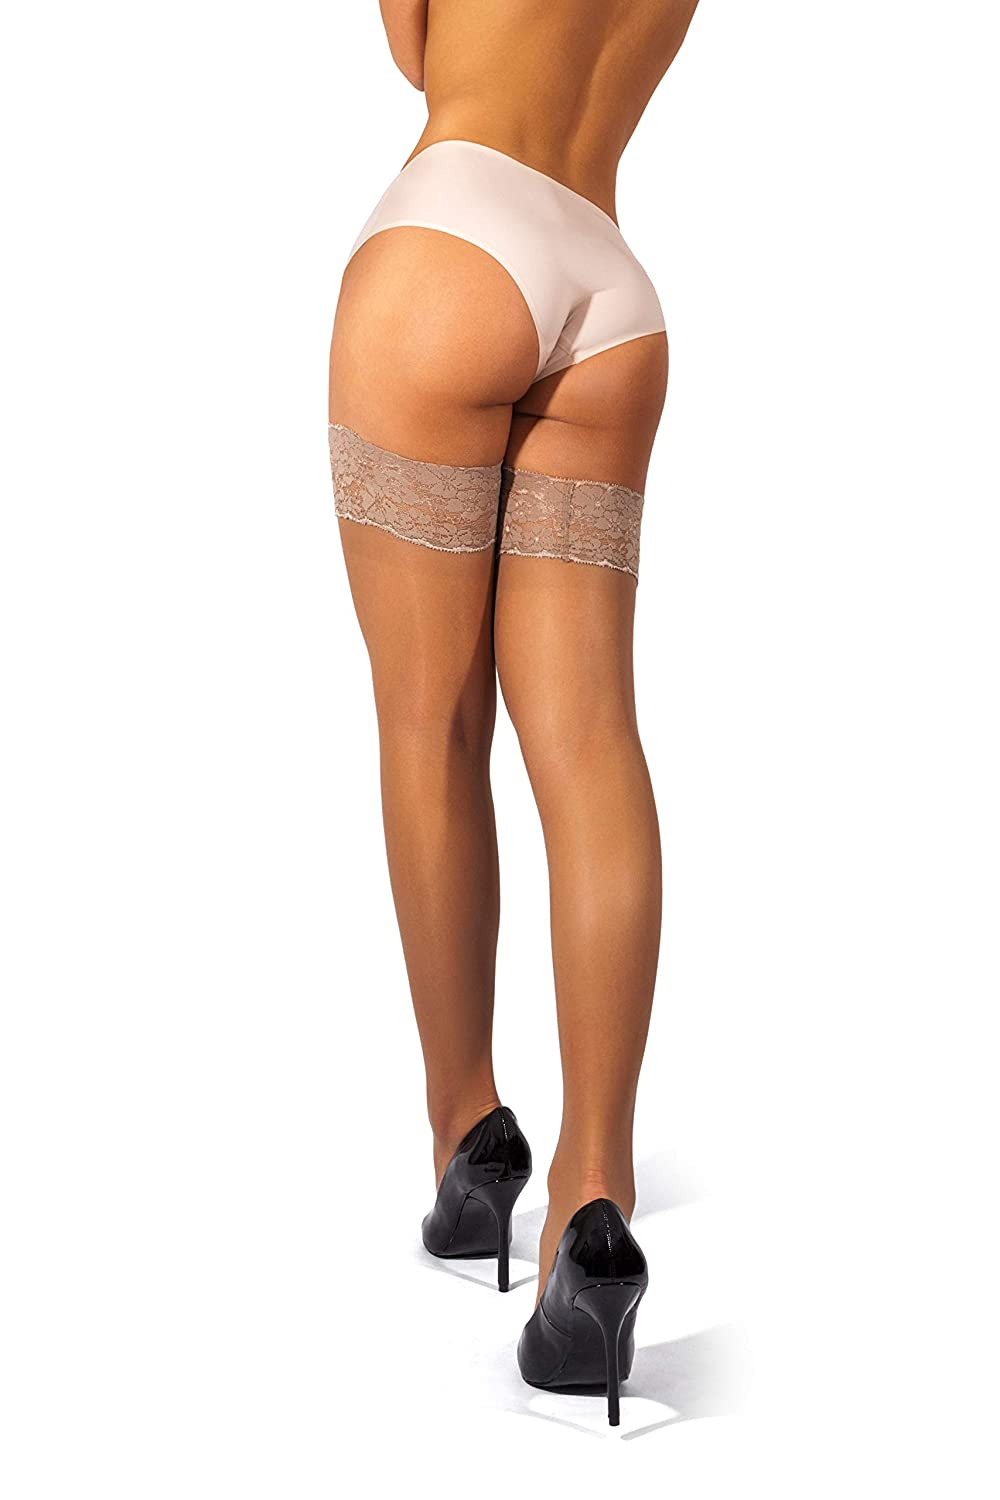 15 or 20 Denier sofsy Lace Sheer Thigh-High Stockings//Pantyhose w//Hold-Up Silicone Made in Italy